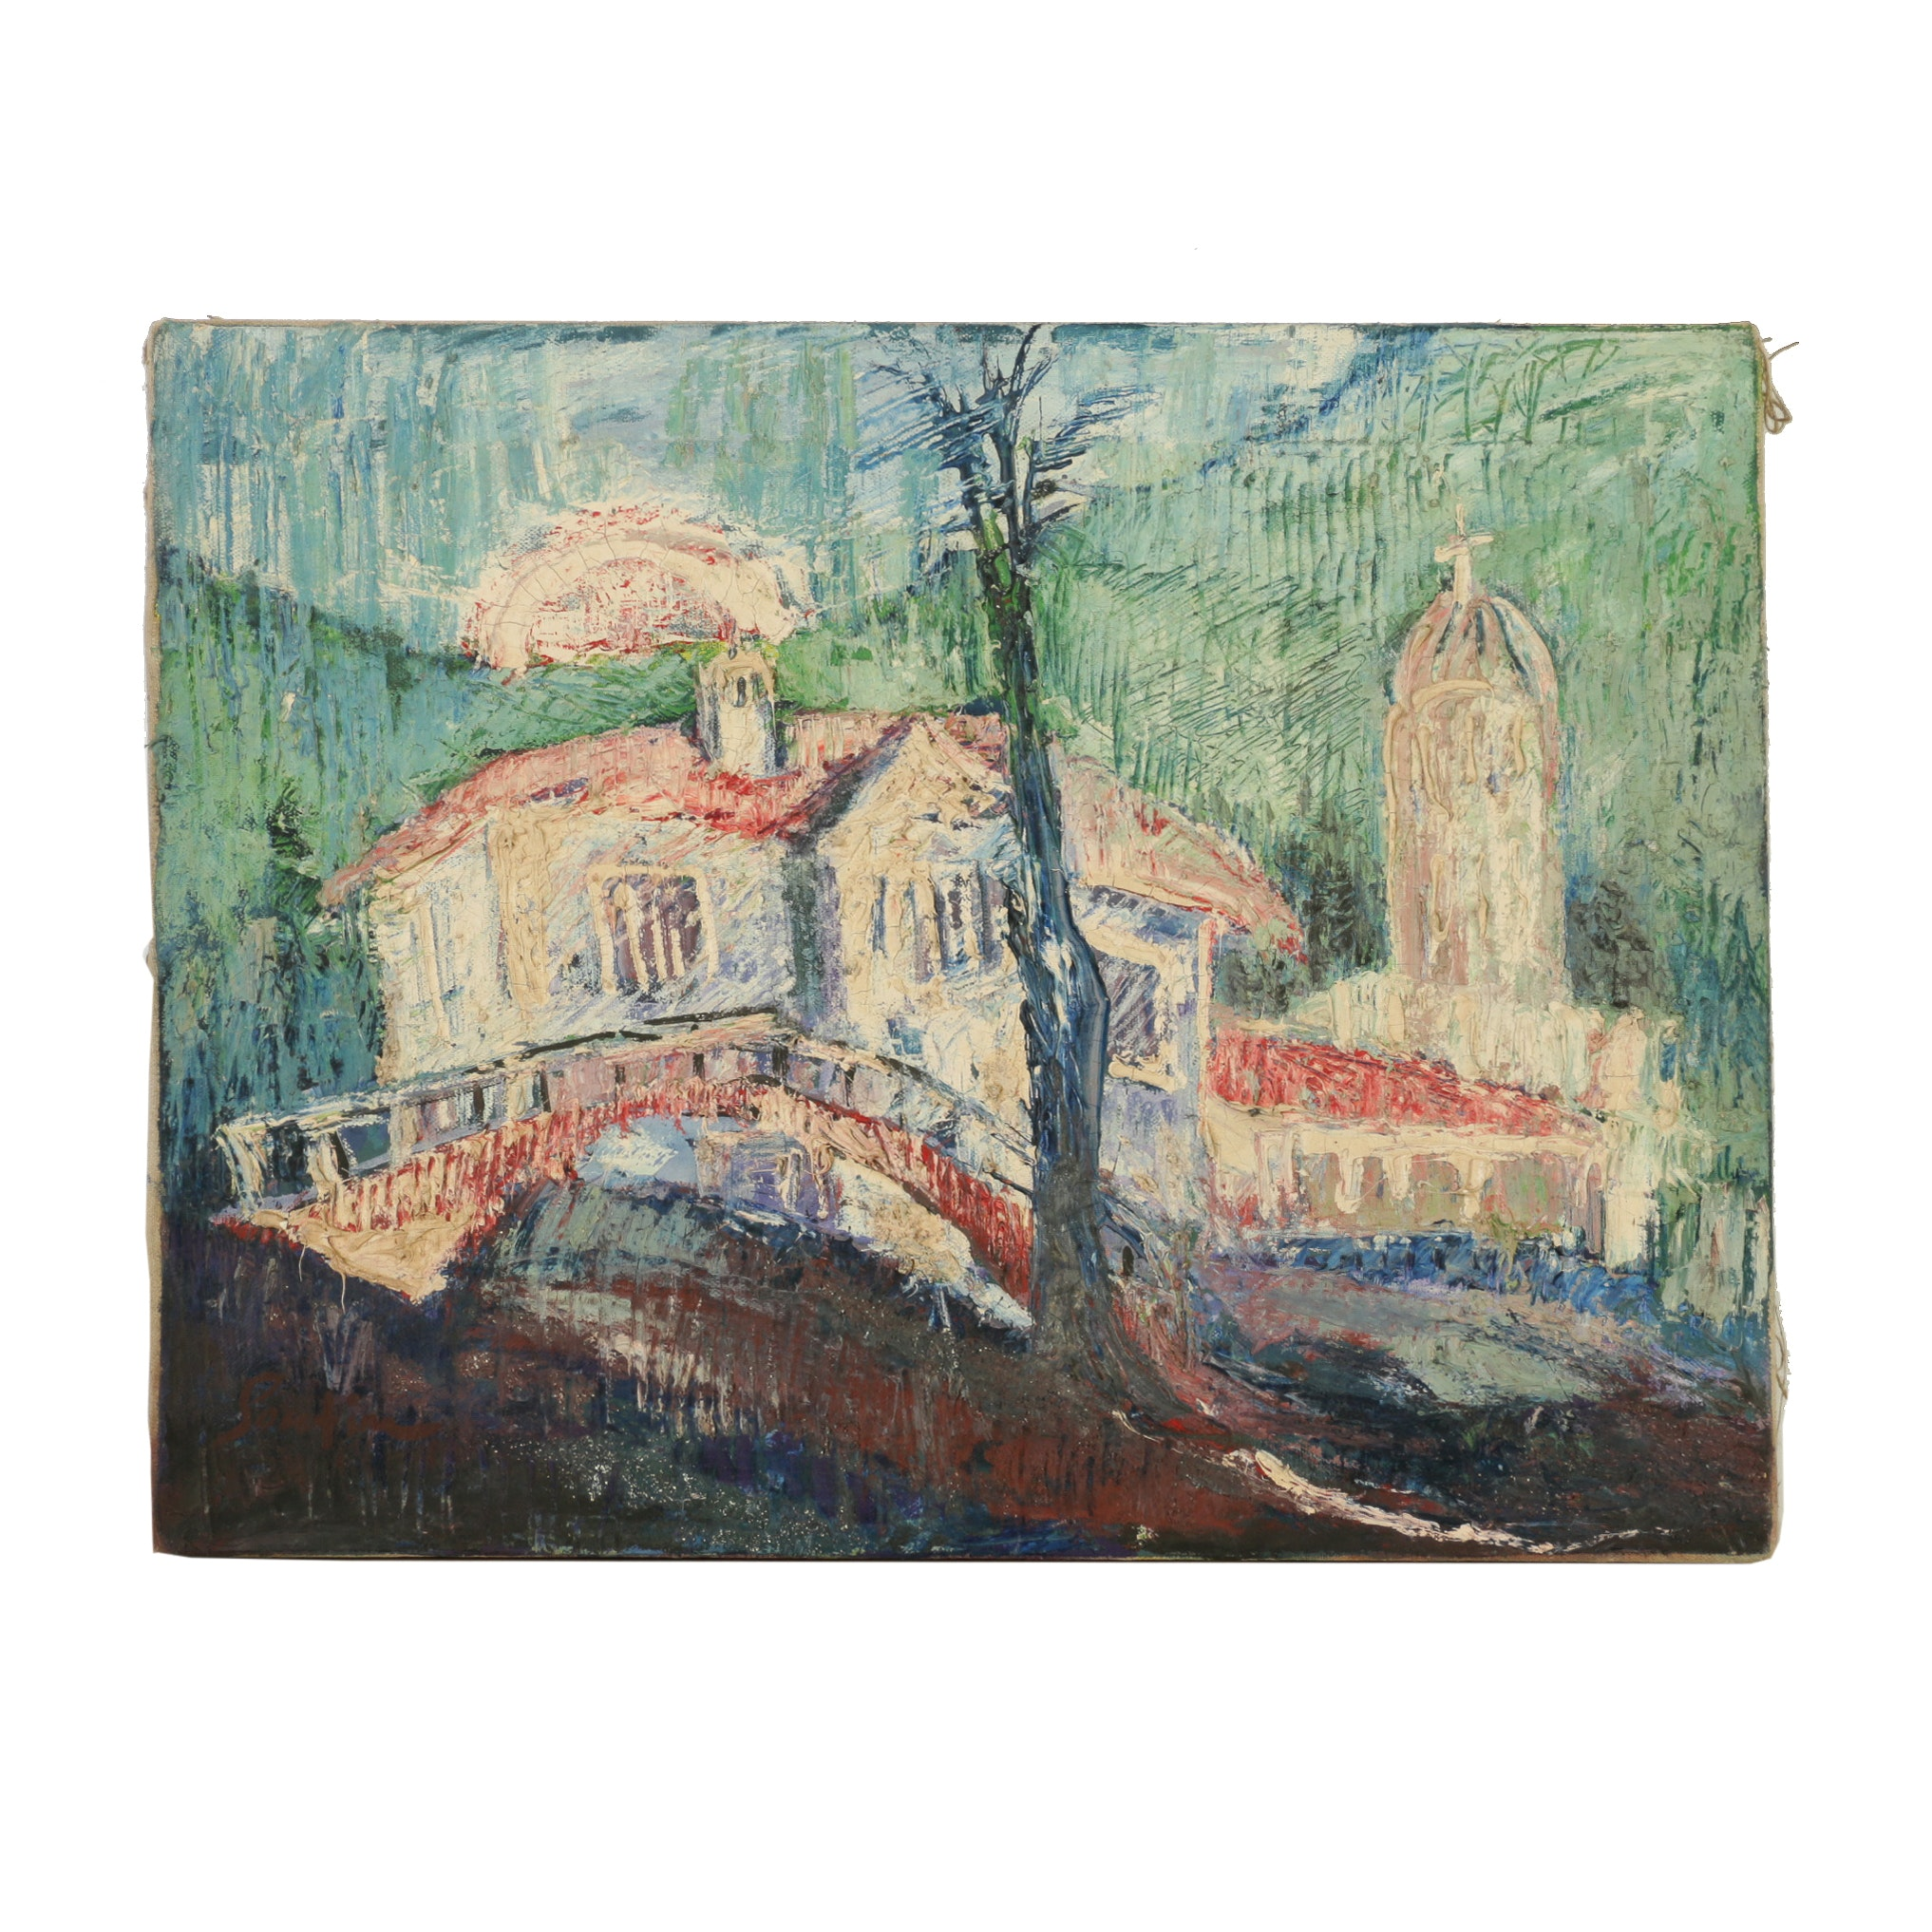 Oil Painting on Canvas Landscape In The Manner of Chaim Soutine